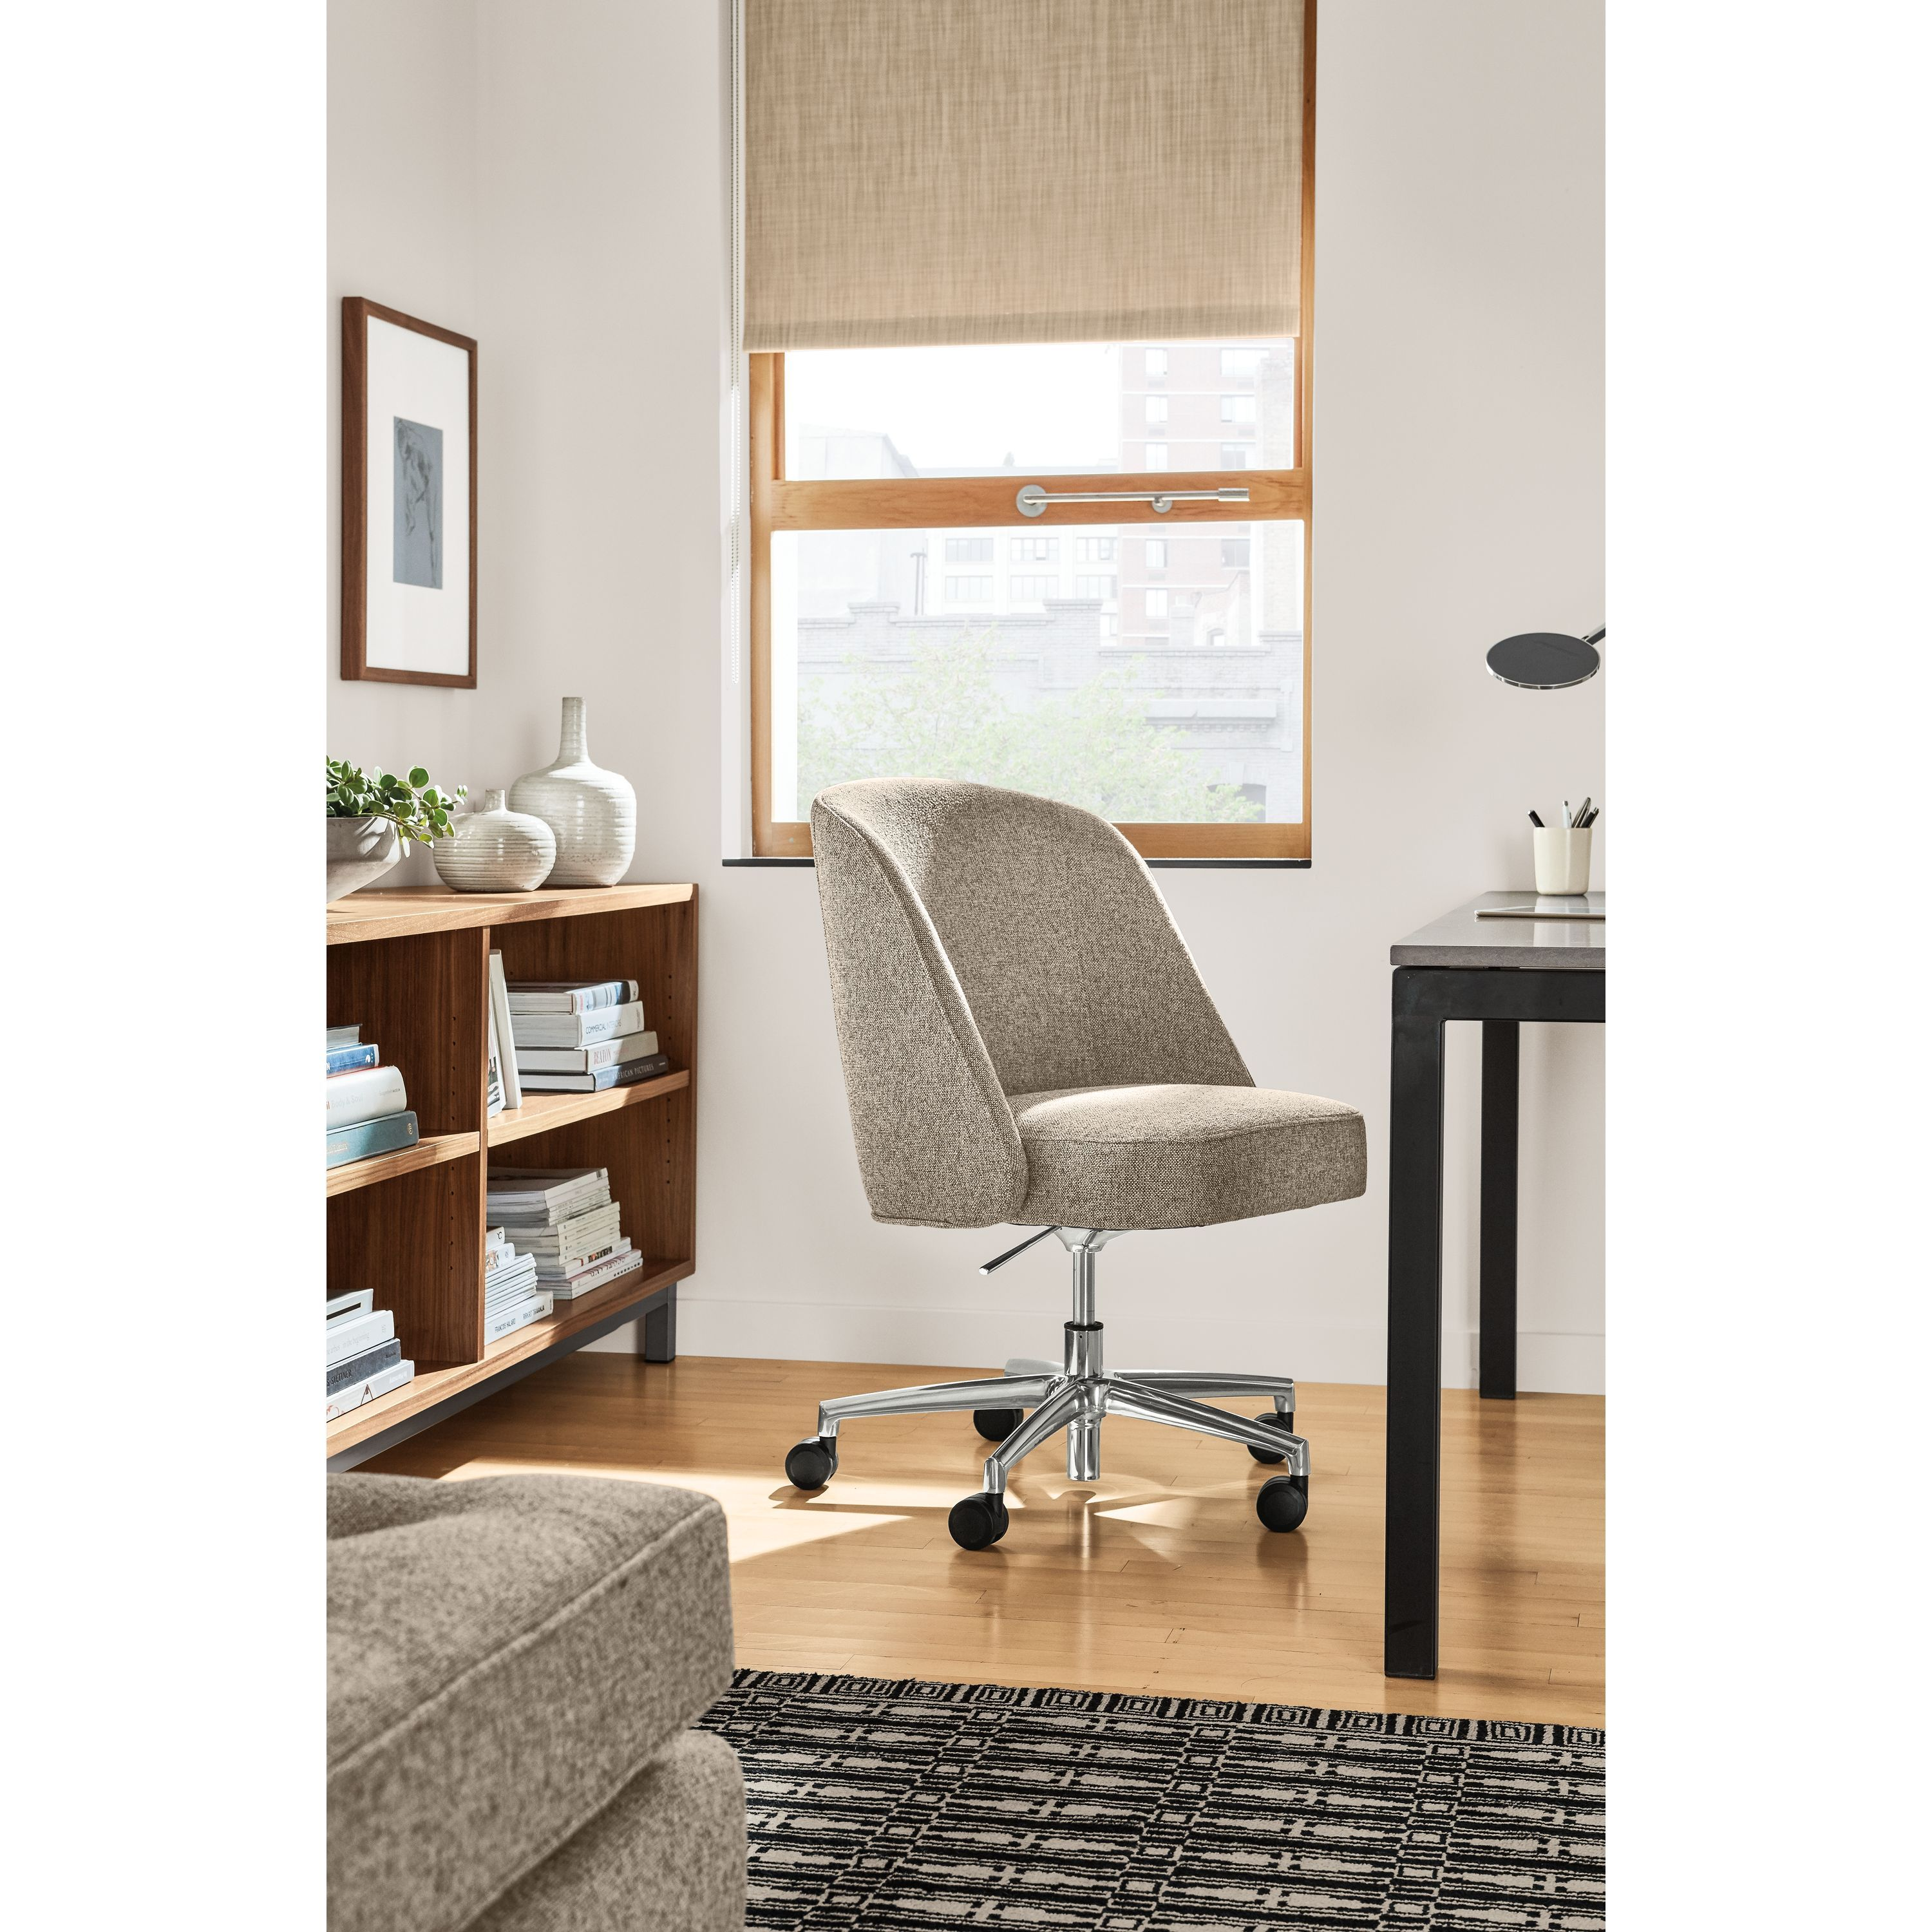 Cora Office Chair Modern Office Chairs Task Chairs Modern Office Furniture Room Board In 2020 Office Furniture Modern Modern Office Chair Modern Furniture Living Room #office #chair #living #room